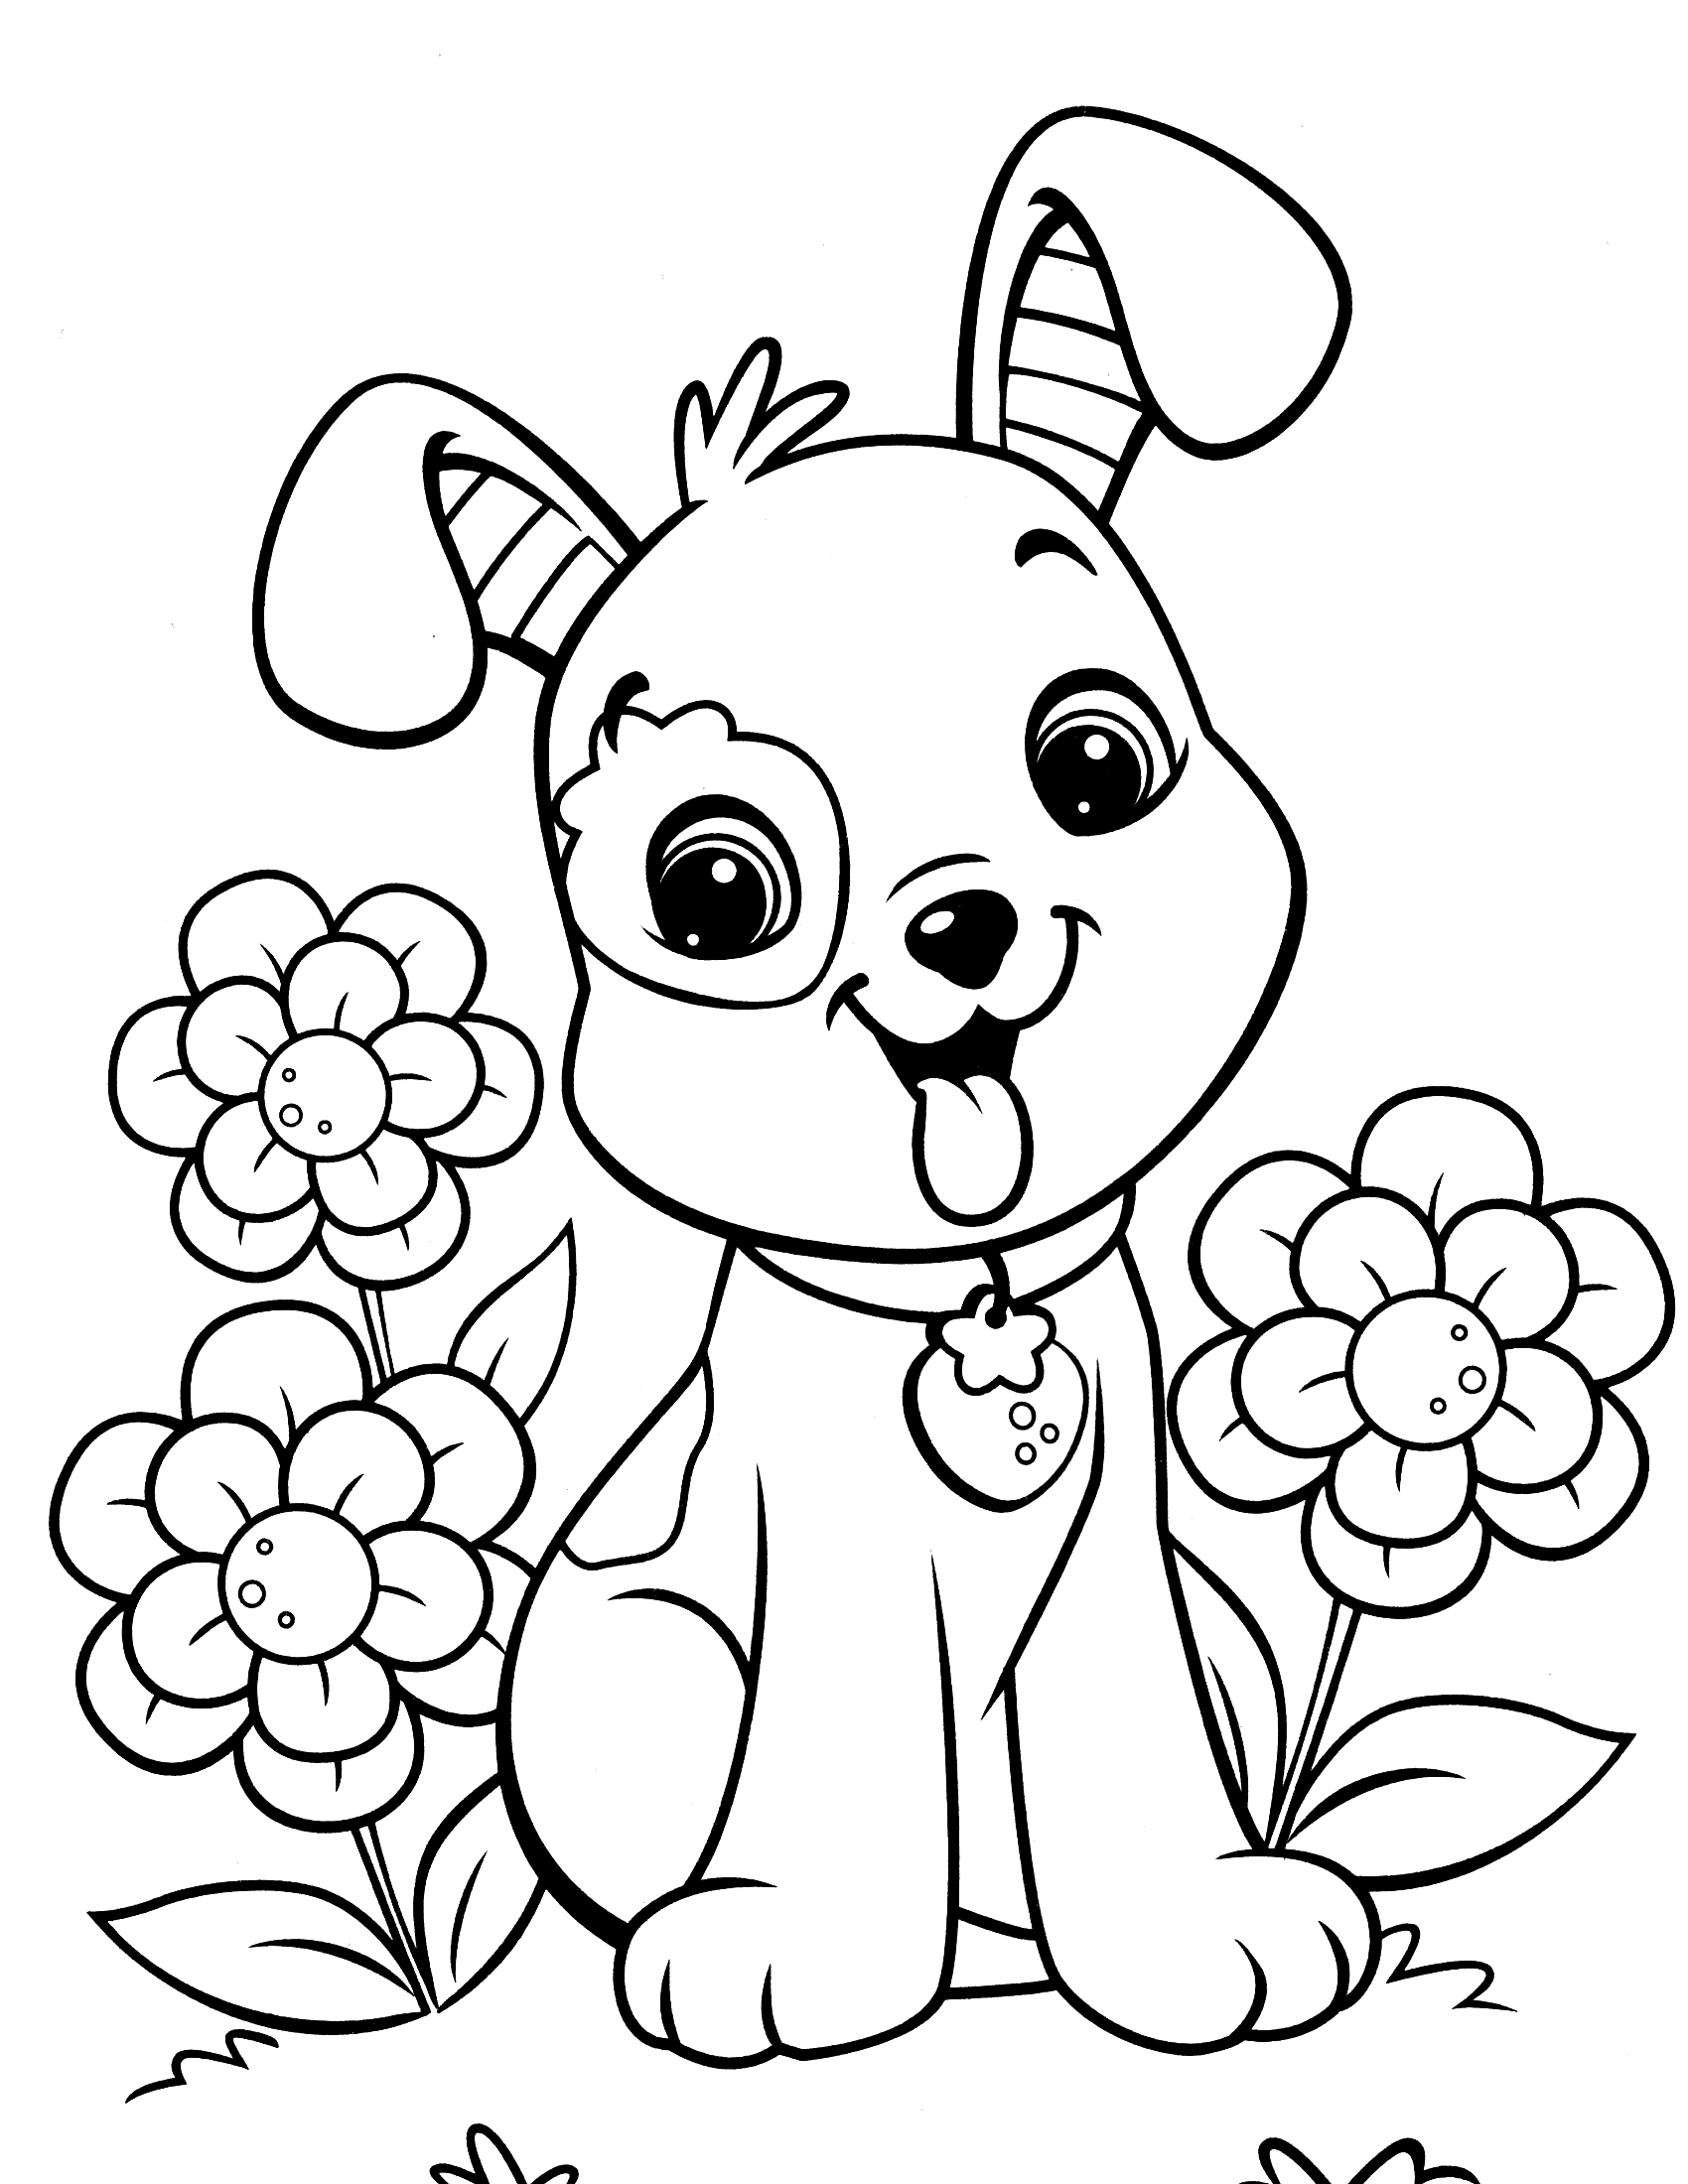 puppy pictures for coloring sad puppy coloring pages at getcoloringscom free puppy pictures coloring for